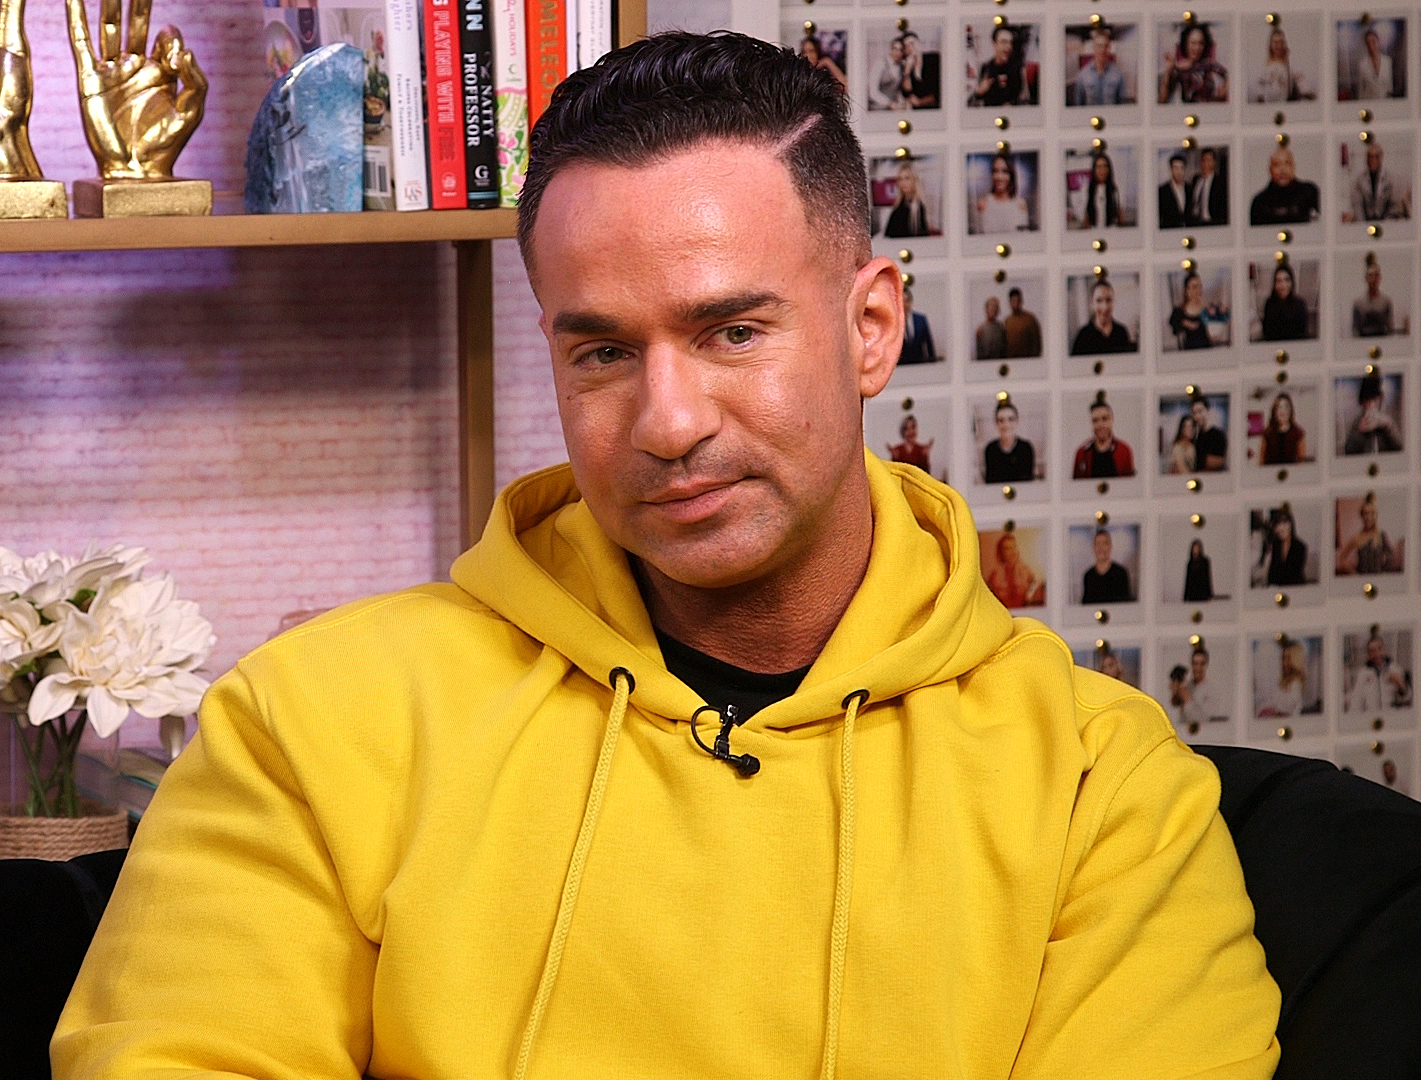 Mike-Sorrentino-Tried-to-Talk-Snooki-Out-of-Quitting-'Jersey-Shore'